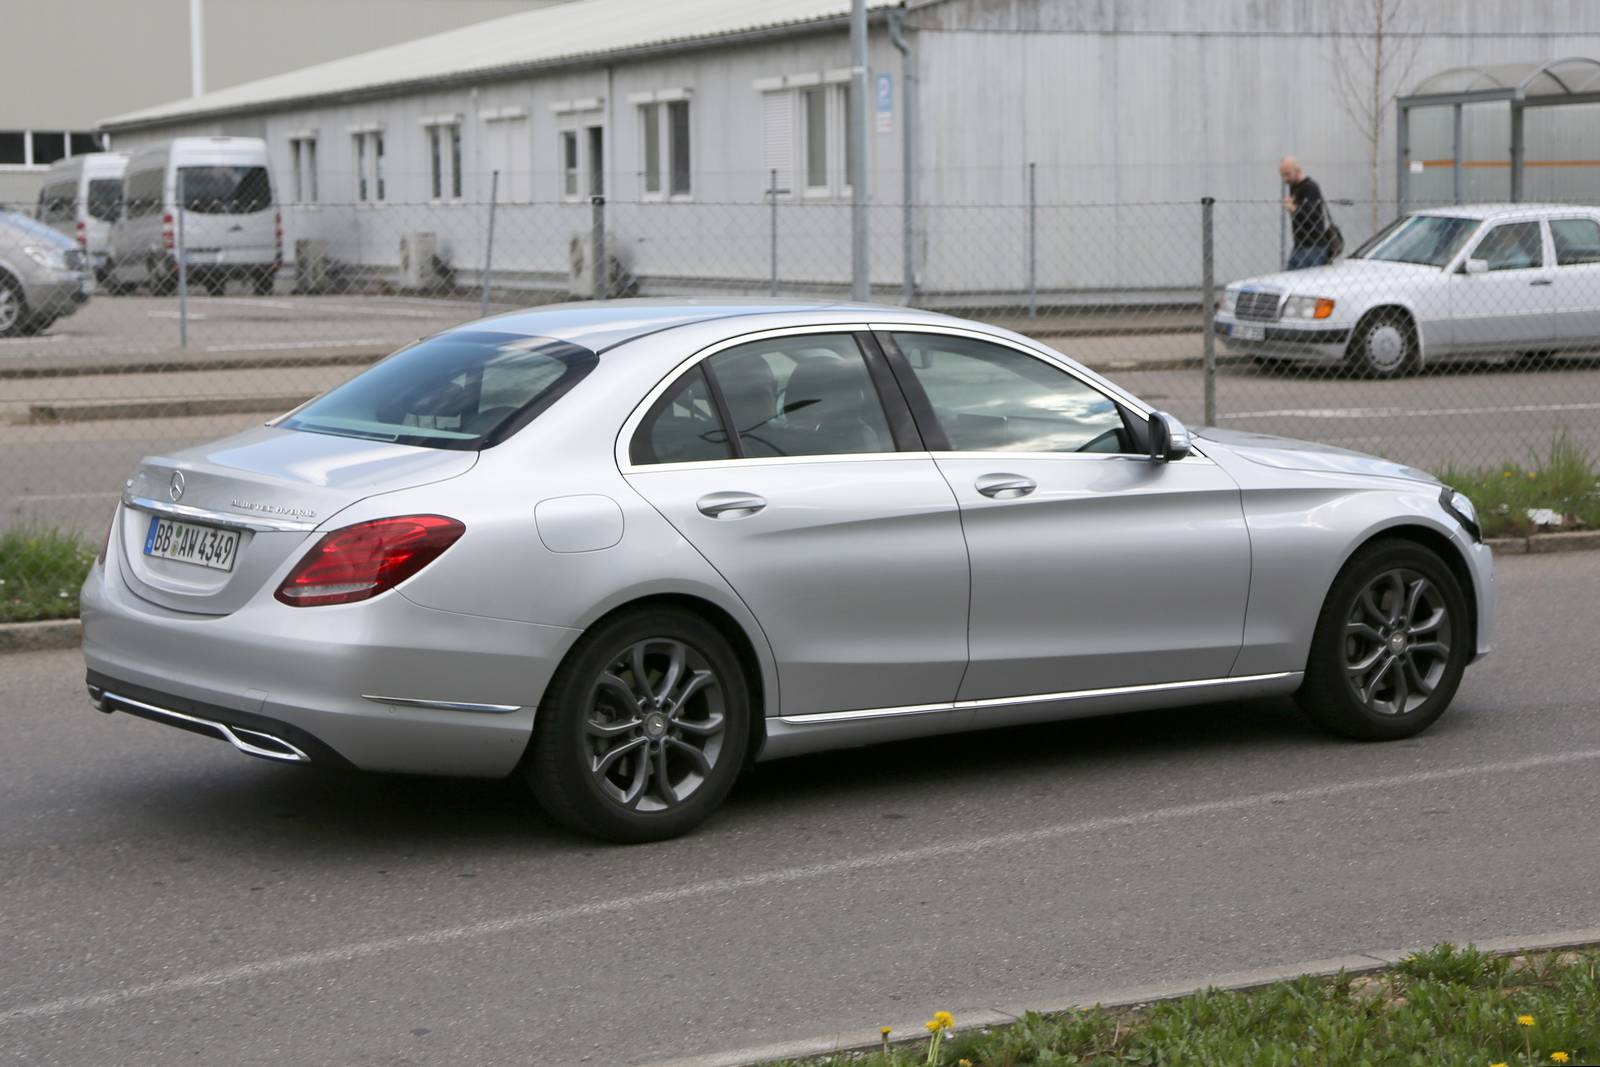 2018 mercedes benz c class facelift spy shots gtspirit for Mercedes benz c class models